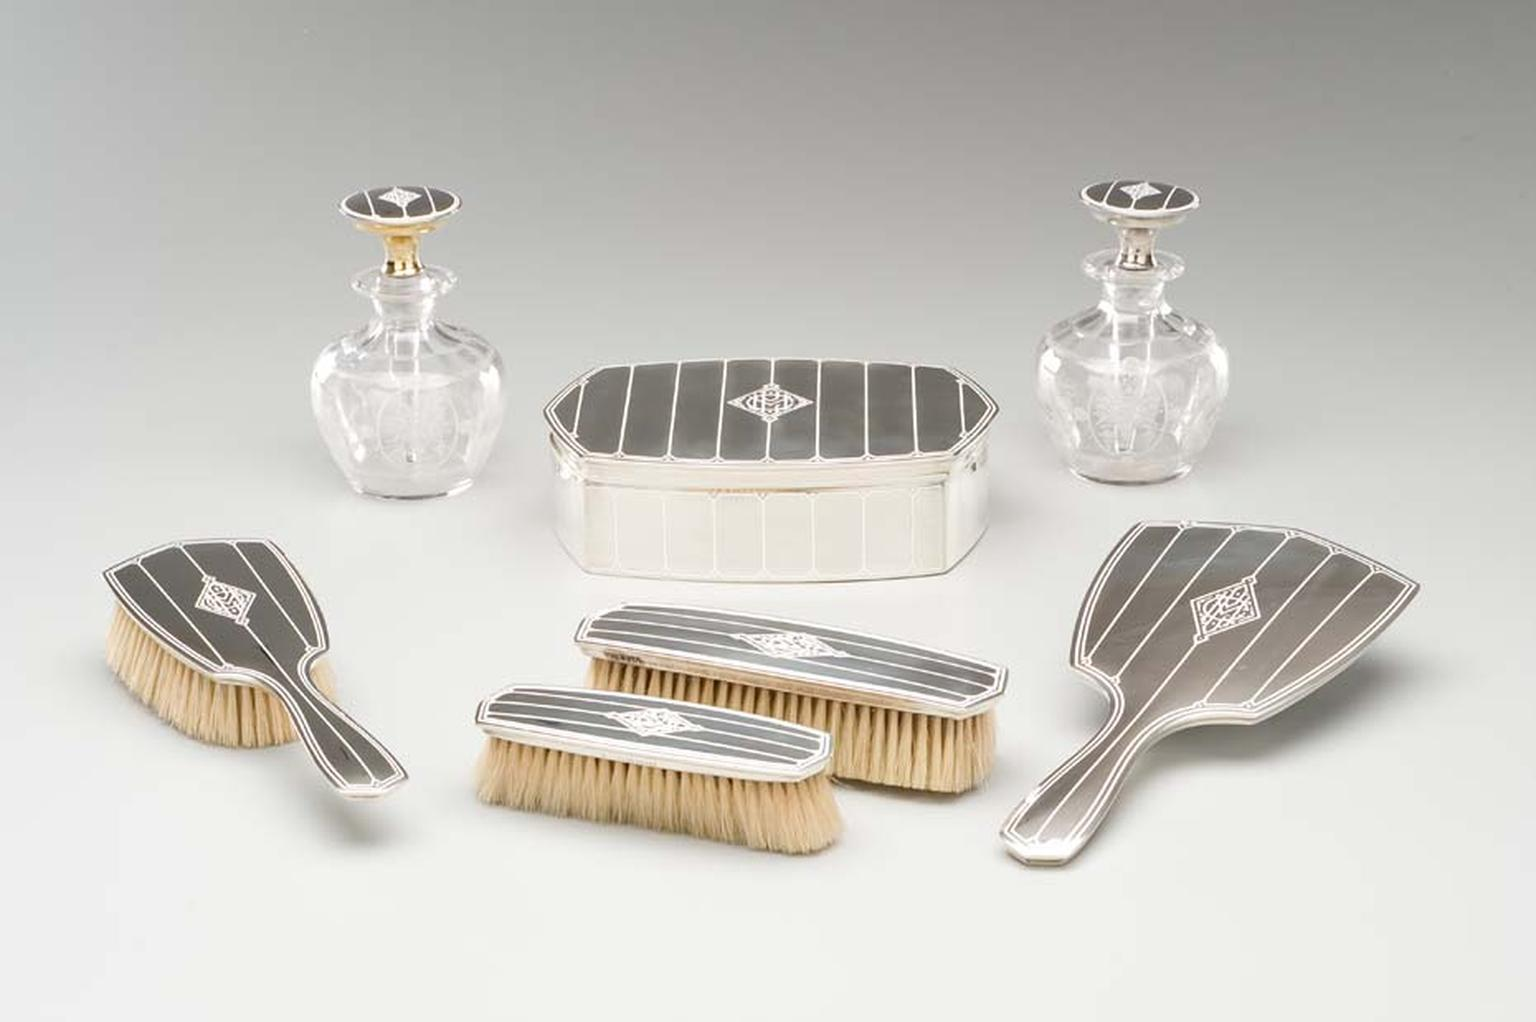 Cartier dressing table set with silver, enamel and glass circa 1915. Image: Courtesy Hillwood Estate, Museum and Gardens